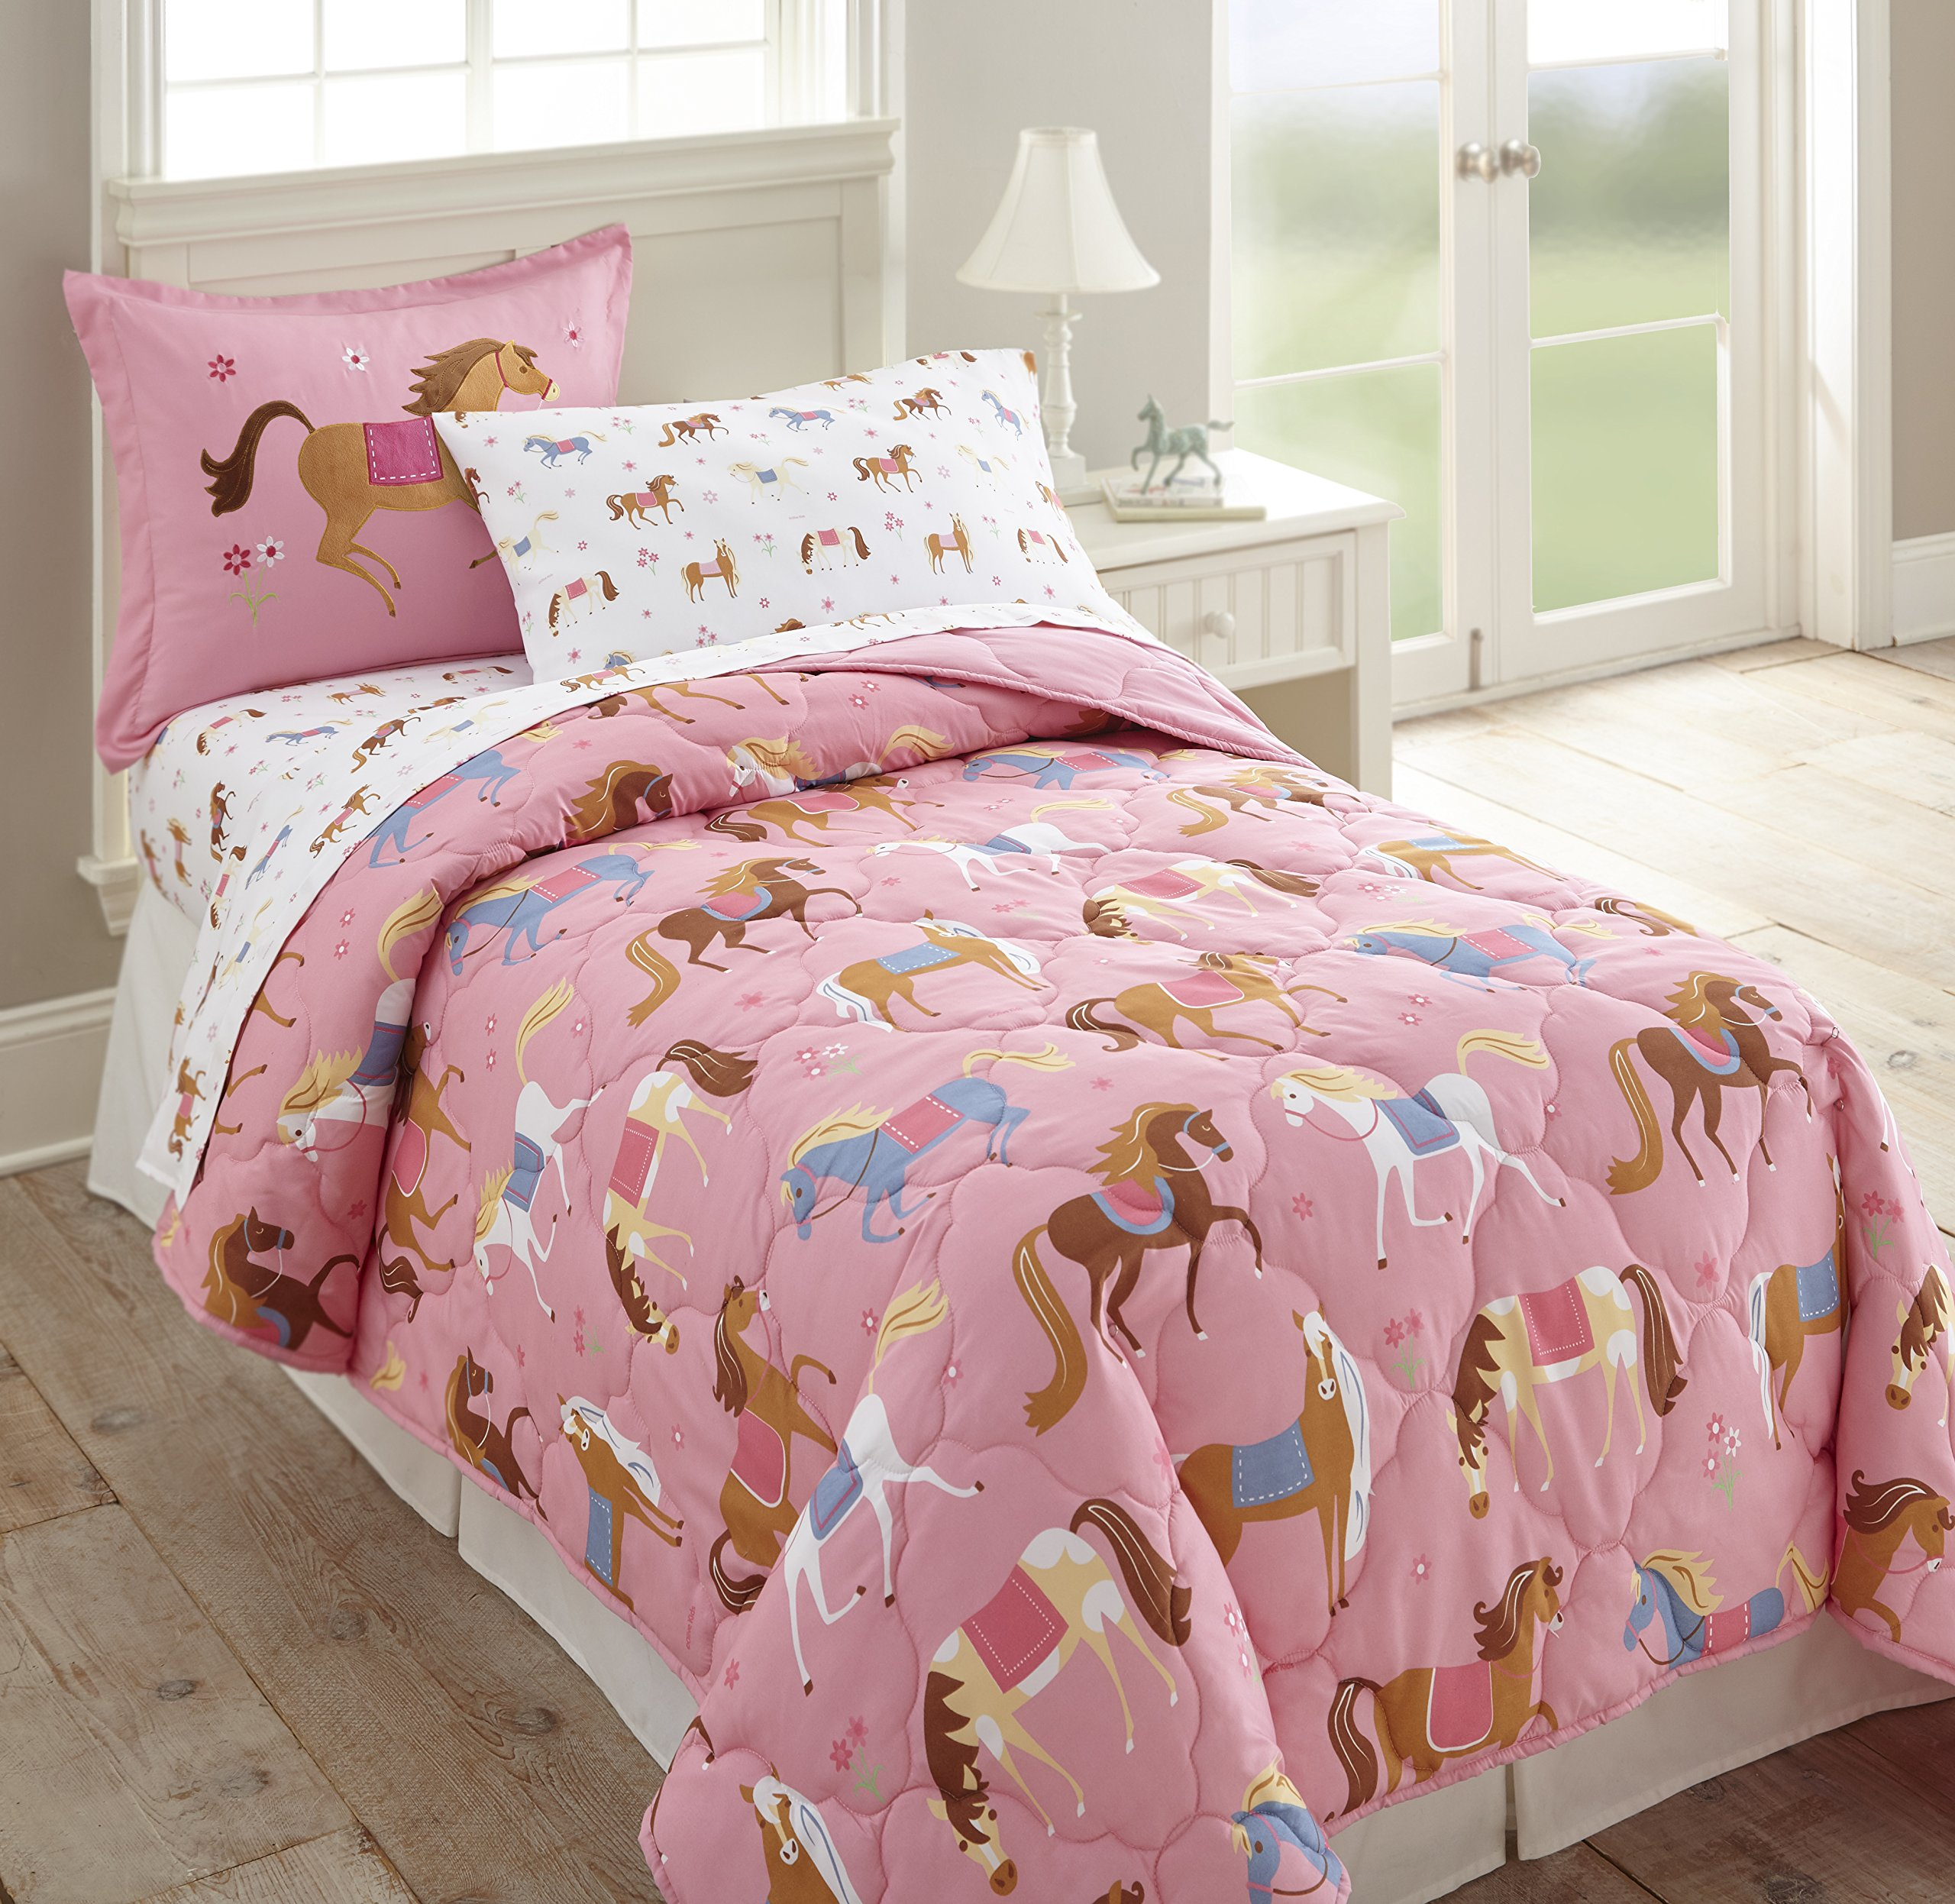 Olive Kids Horses 7 pc Bed in a Bag - Full